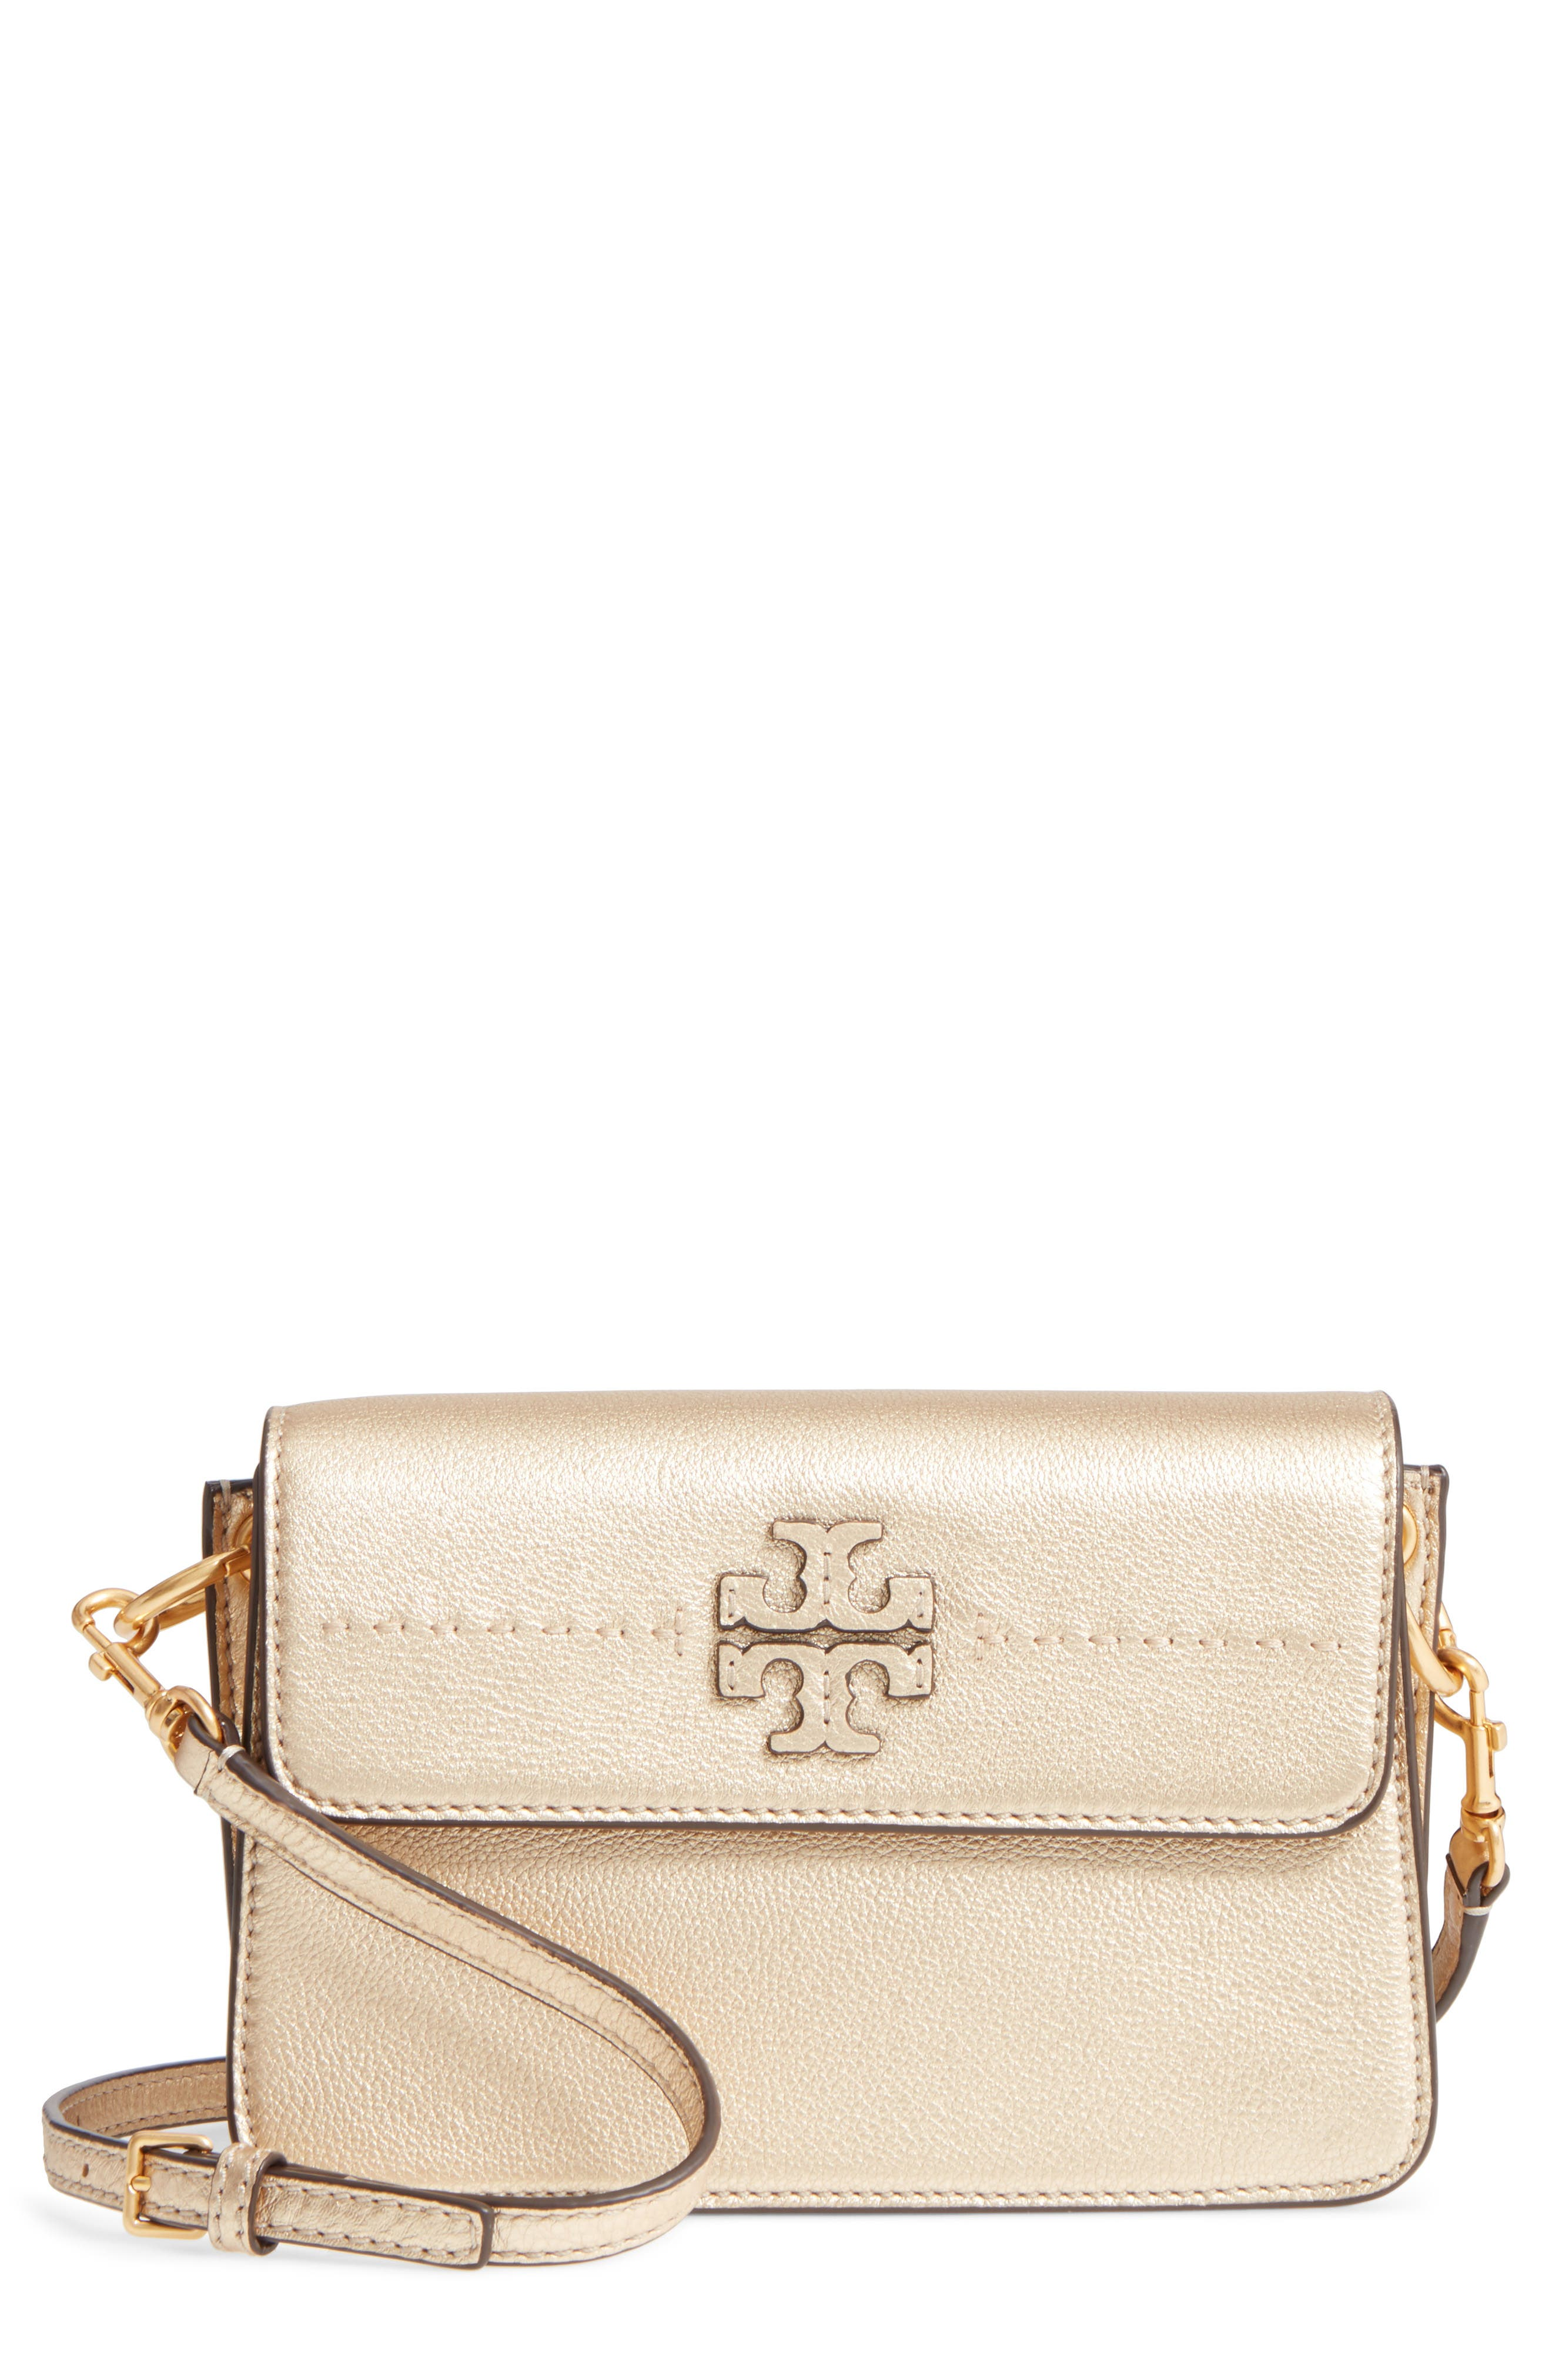 McGraw Metallic Leather Shoulder Bag,                             Main thumbnail 1, color,                             Gold